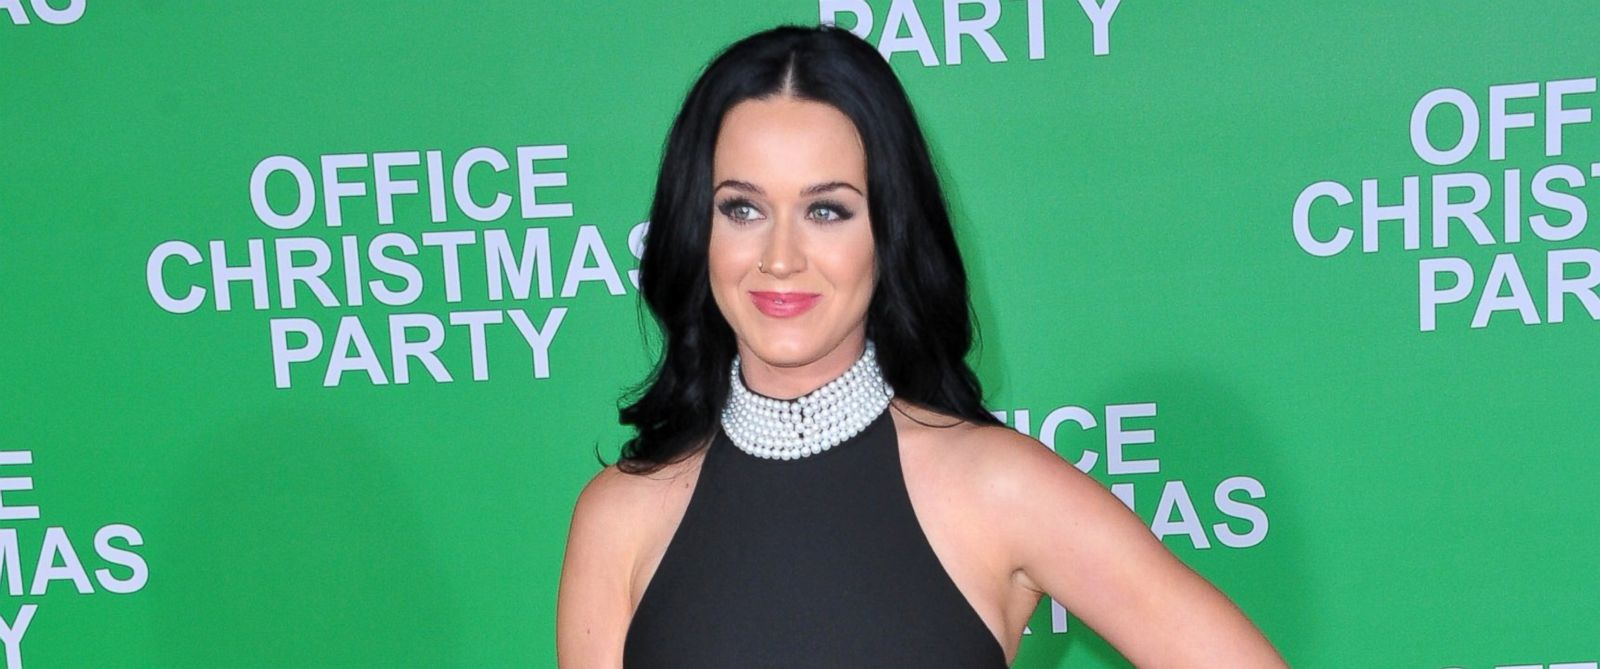 """PHOTO: Singer Katy Perry attends the premiere of Paramount Pictures """"Office Christmas Party"""" at Regency Village Theatre, Dec. 7, 2016, in Westwood, California."""